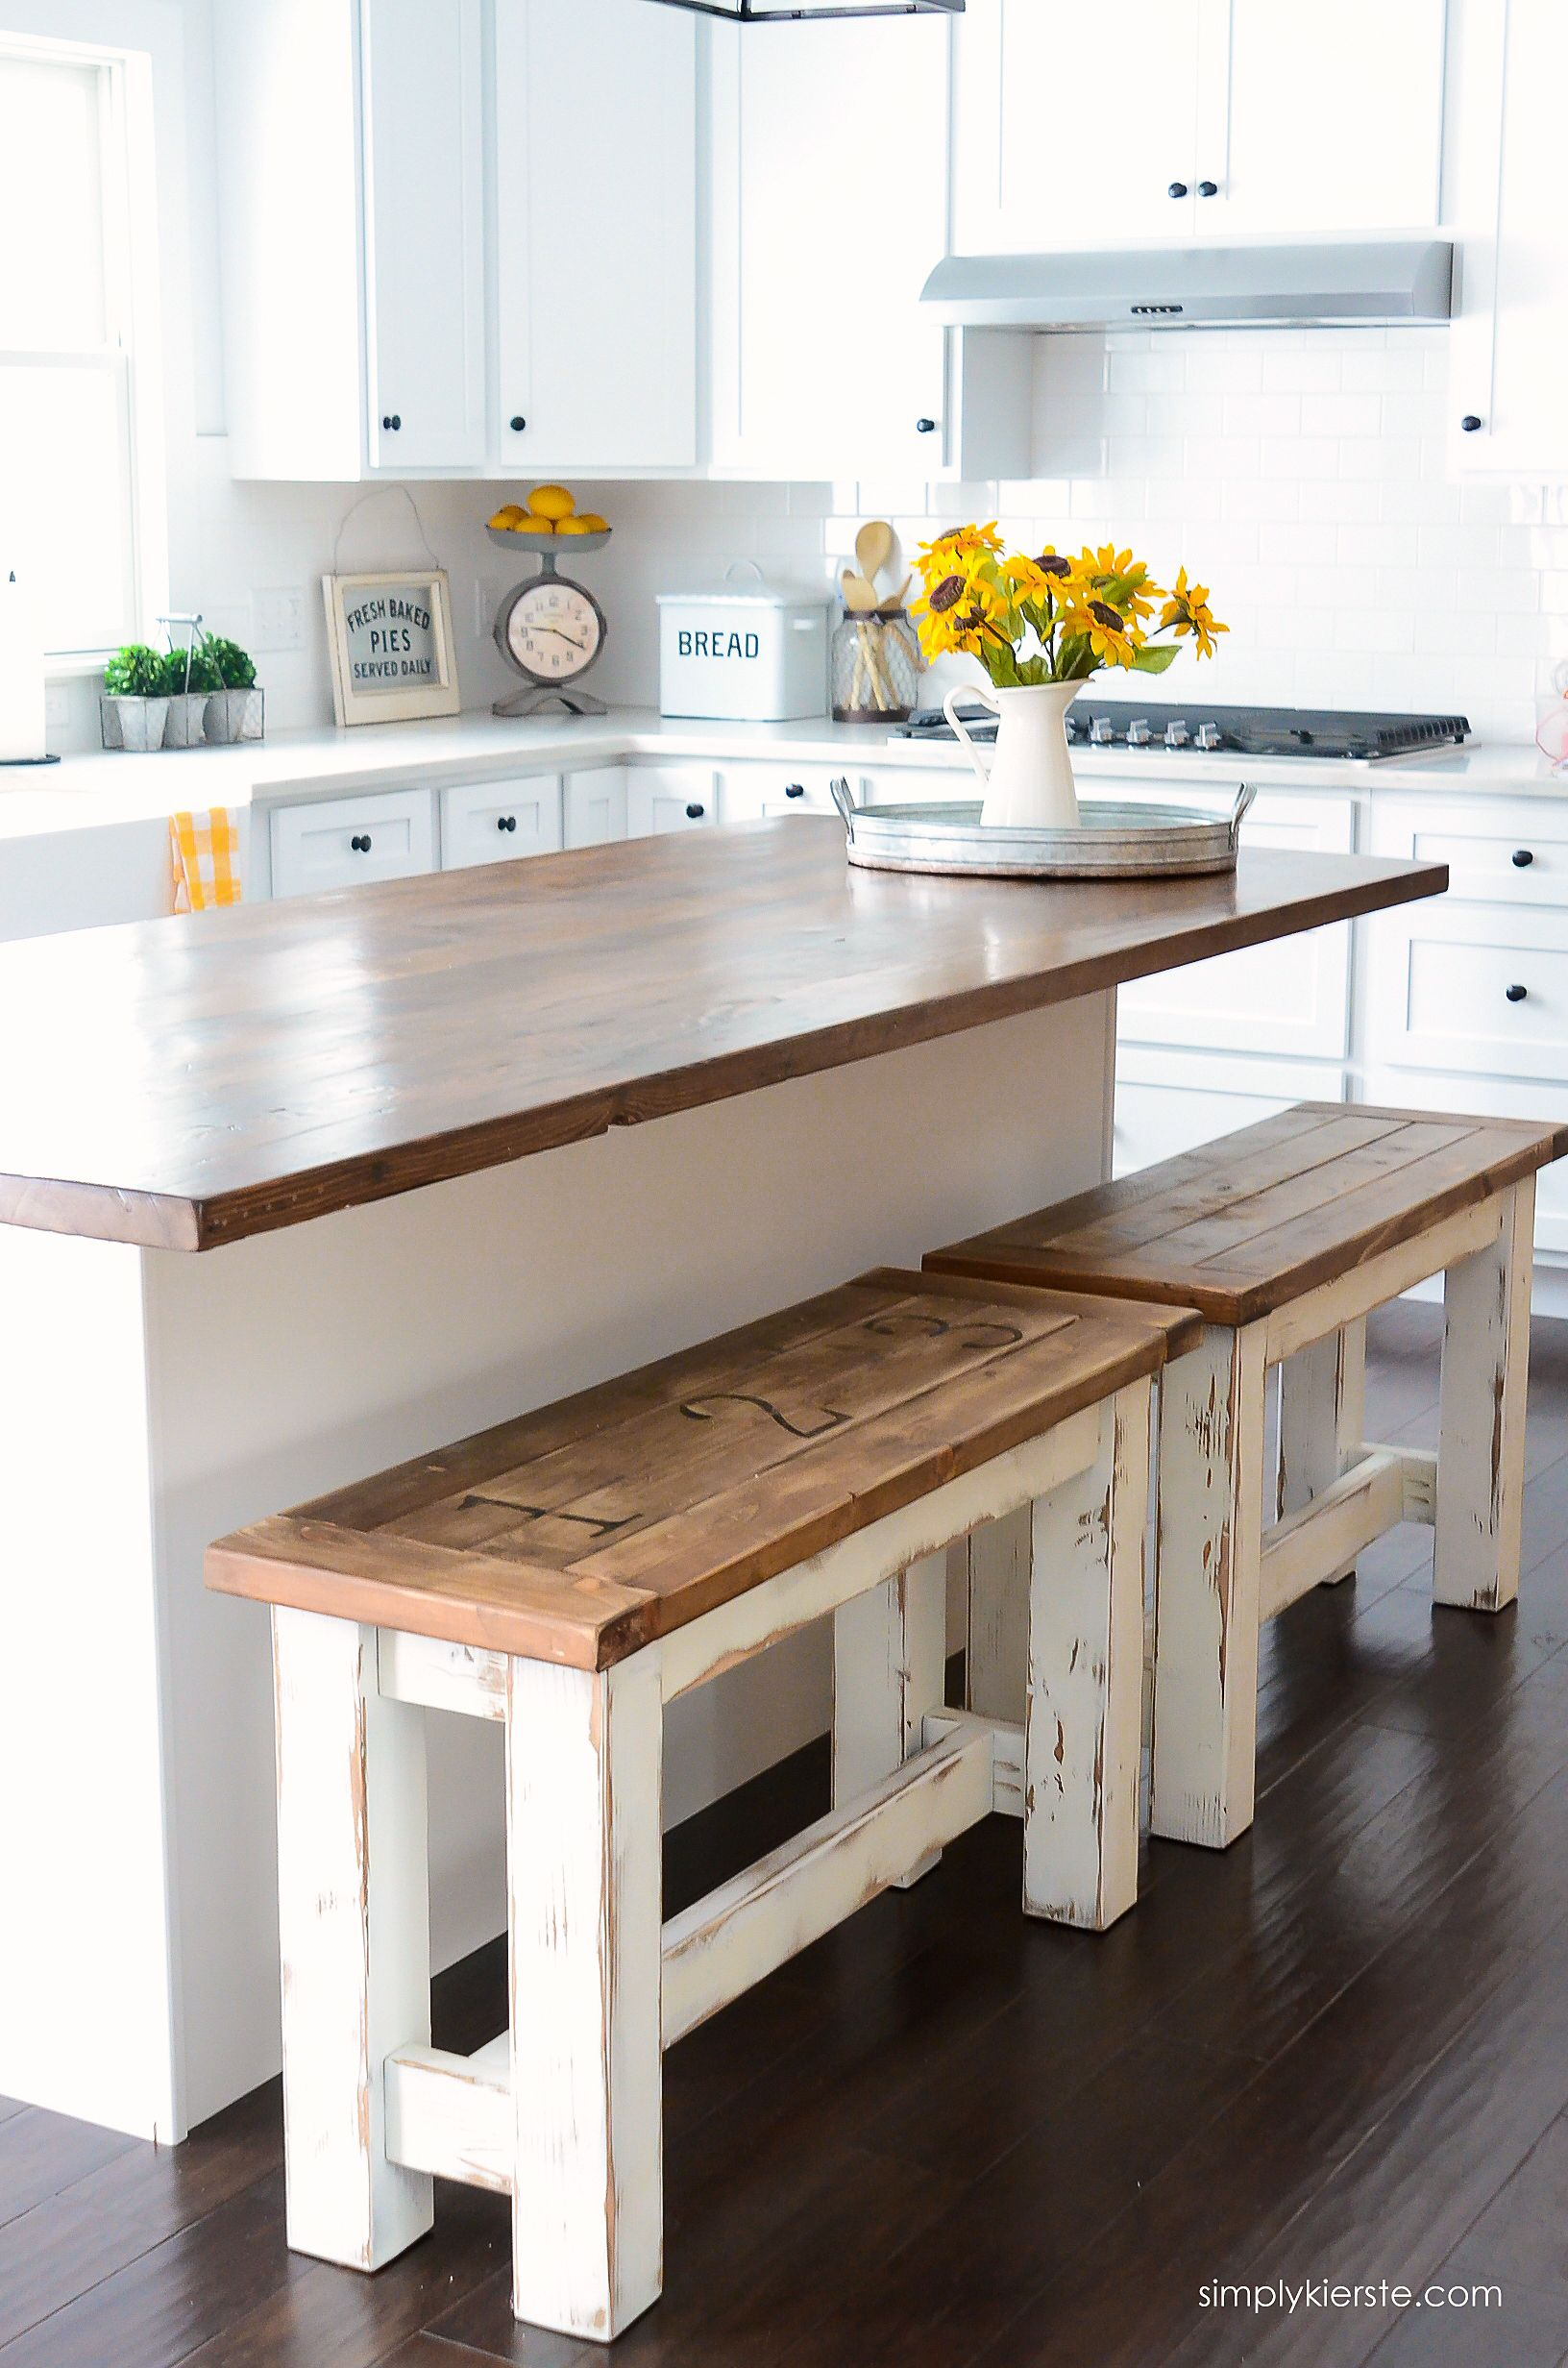 Diy kitchen benches kitchen benches farmhouse style and Counter seating